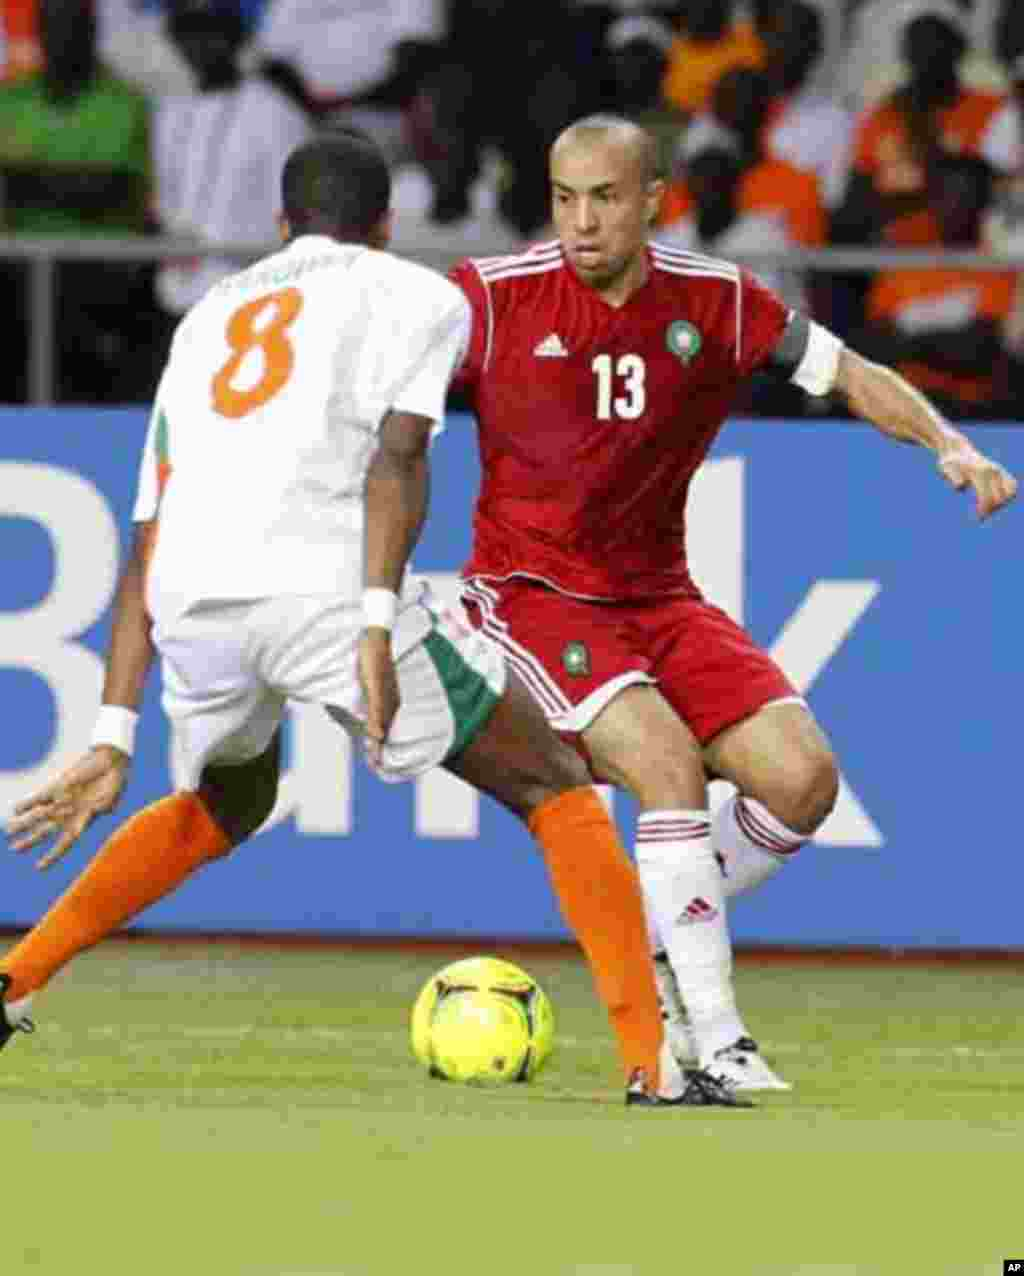 Morocco's Houssine Kharja (13) dribbles the ball against Niger's Harouna Olivier (8) during their final African Cup of Nations Group C soccer match at the Stade De L'Amitie Stadium in Libreville, Gabon January 31, 2012.